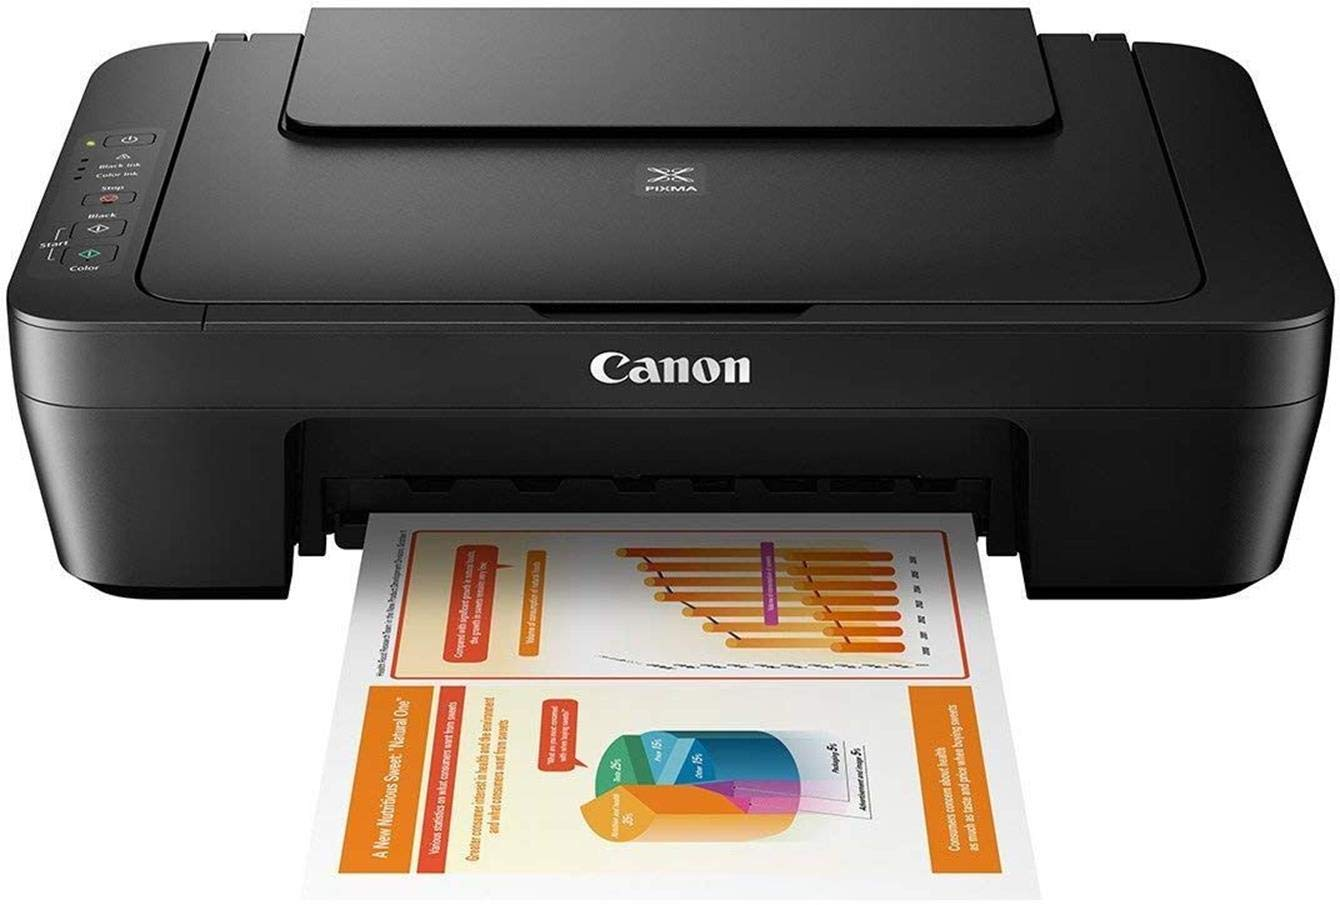 Top 7 Best Printer For Home and Office use in India - Reviews